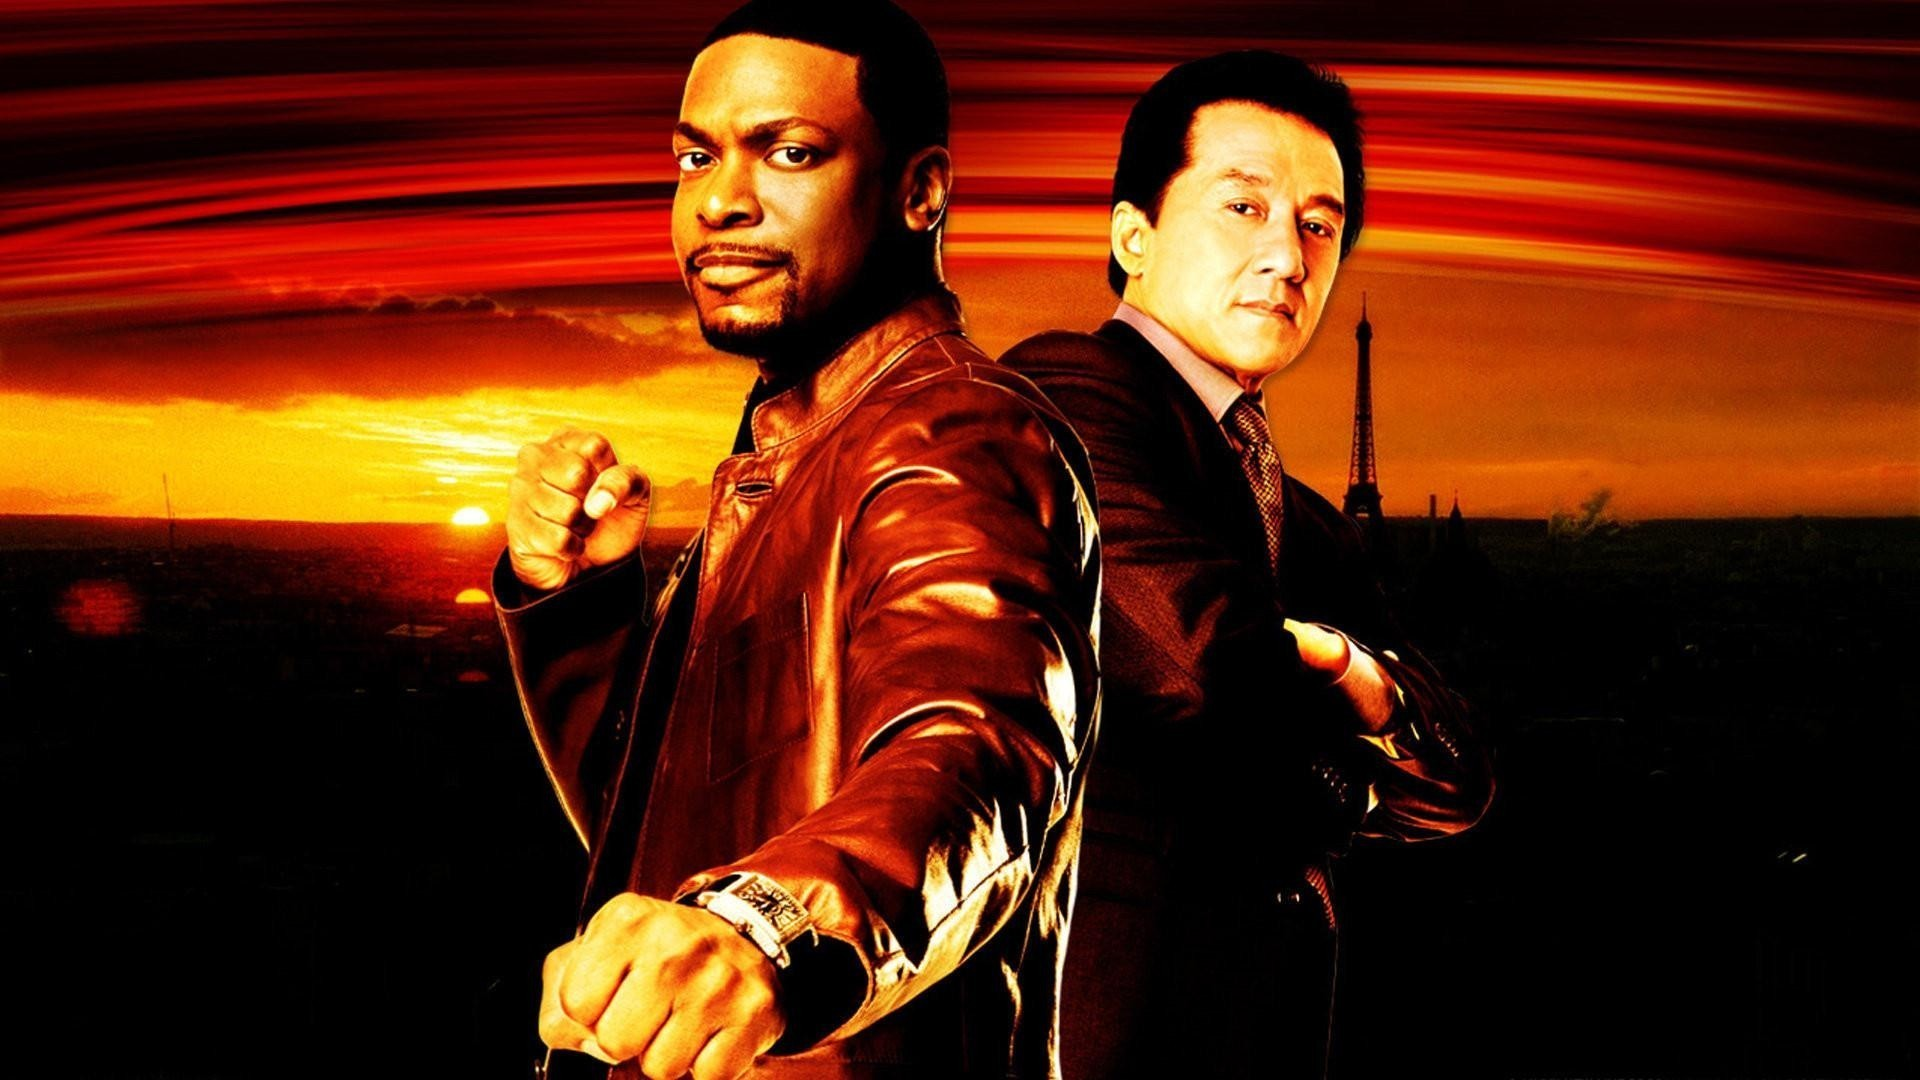 Rush hour 3 full hd wallpaper and background image 1920x1080 movie rush hour 3 wallpaper voltagebd Image collections